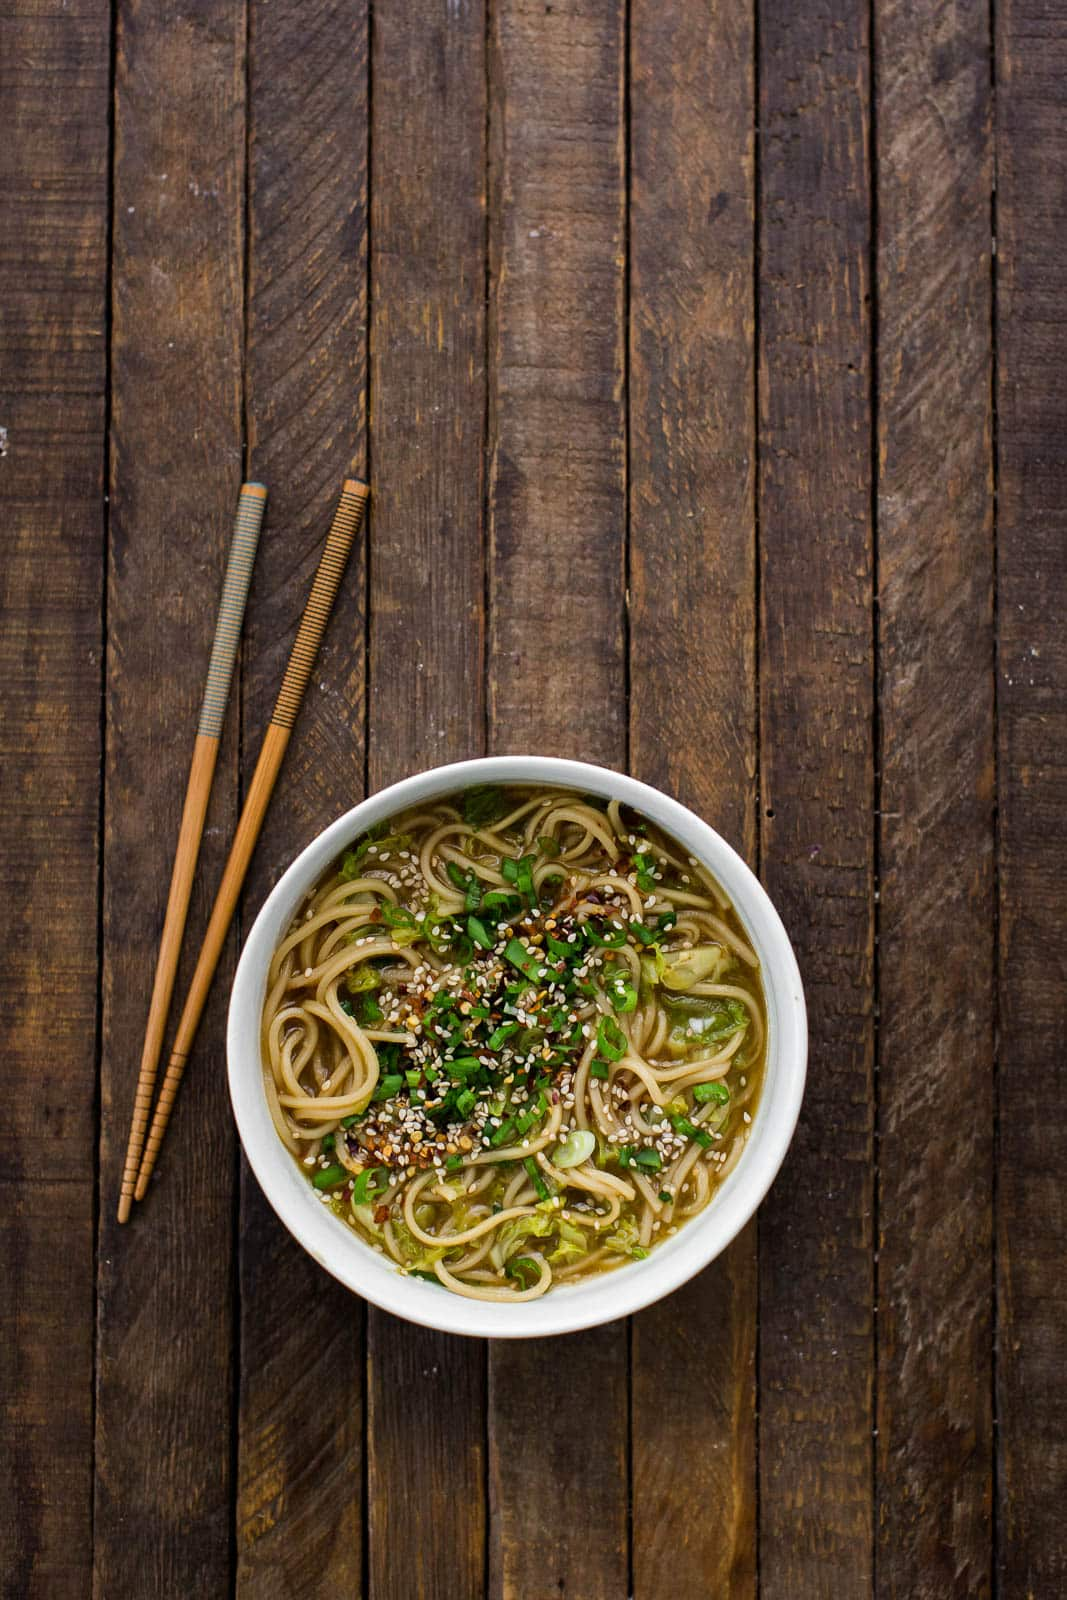 Ginger Noodles (Ramen) with Napa Cabbage